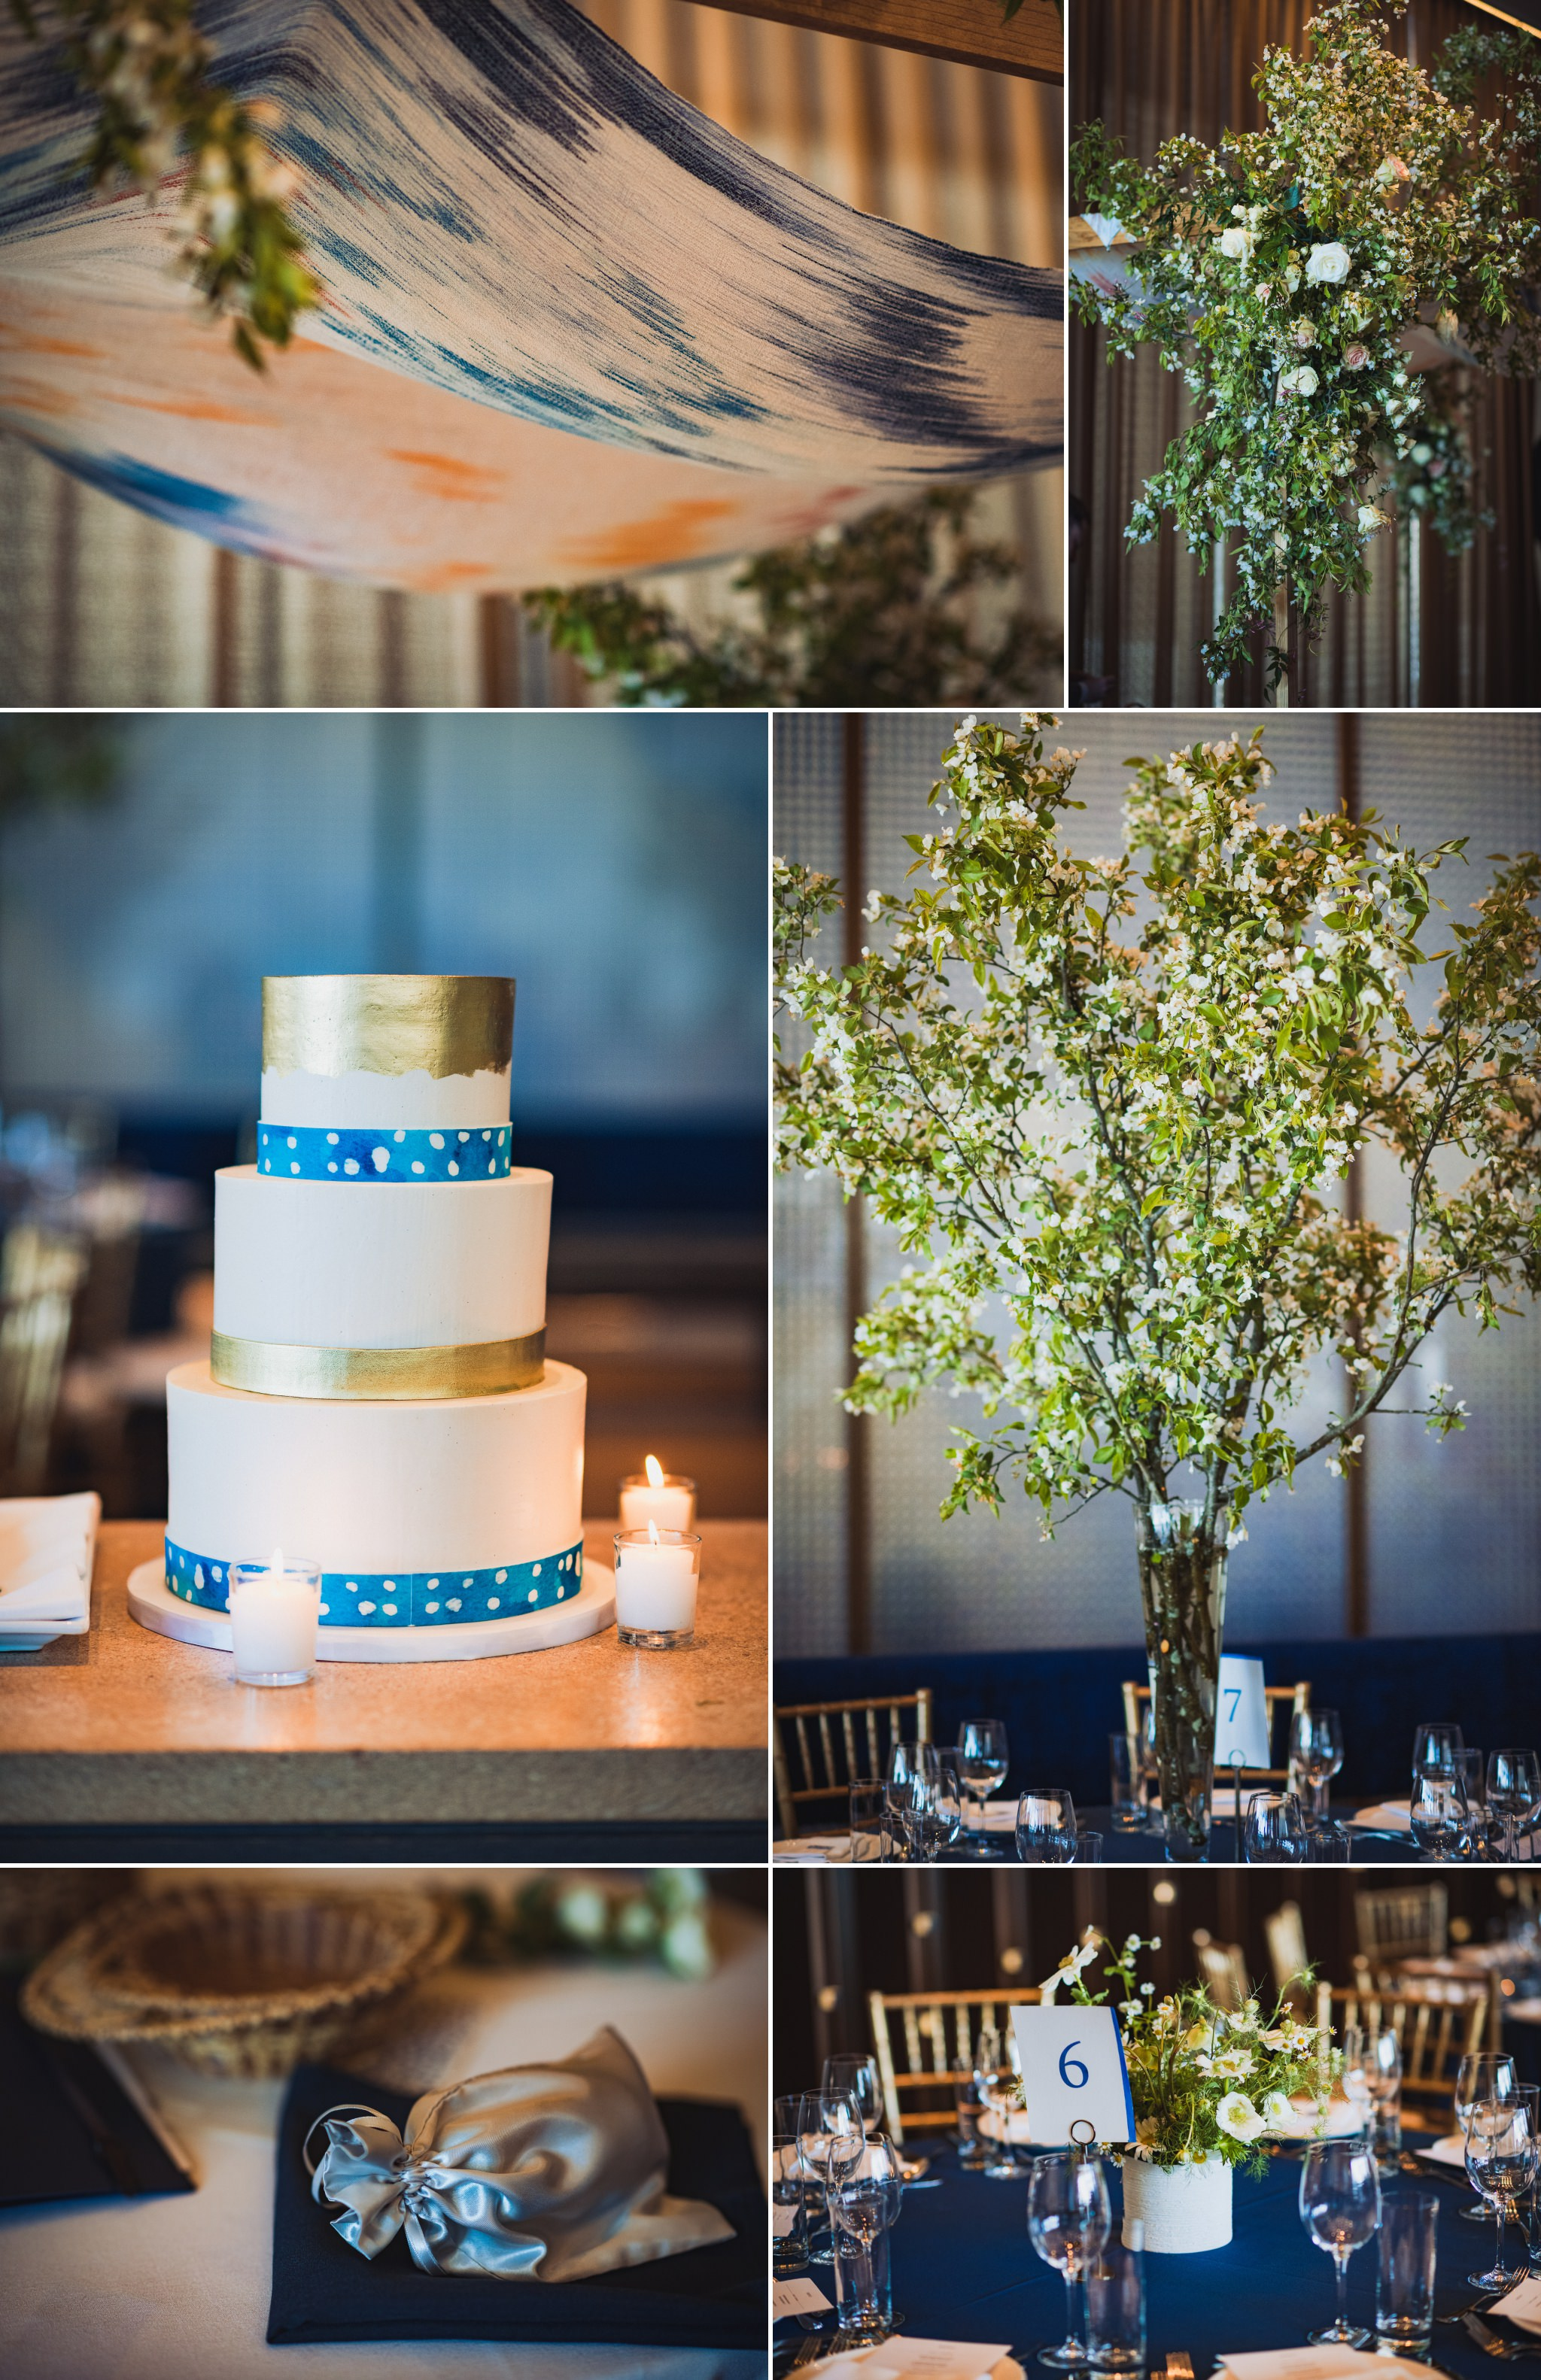 some of the details from Brian and Scott's wedding at Riverpark NYC. I love the cake from Empire Cakes, as well as the venue design. Details are important for embellishing additional color to the story of your day, helping to set the tone of sophistication for your wedding day.